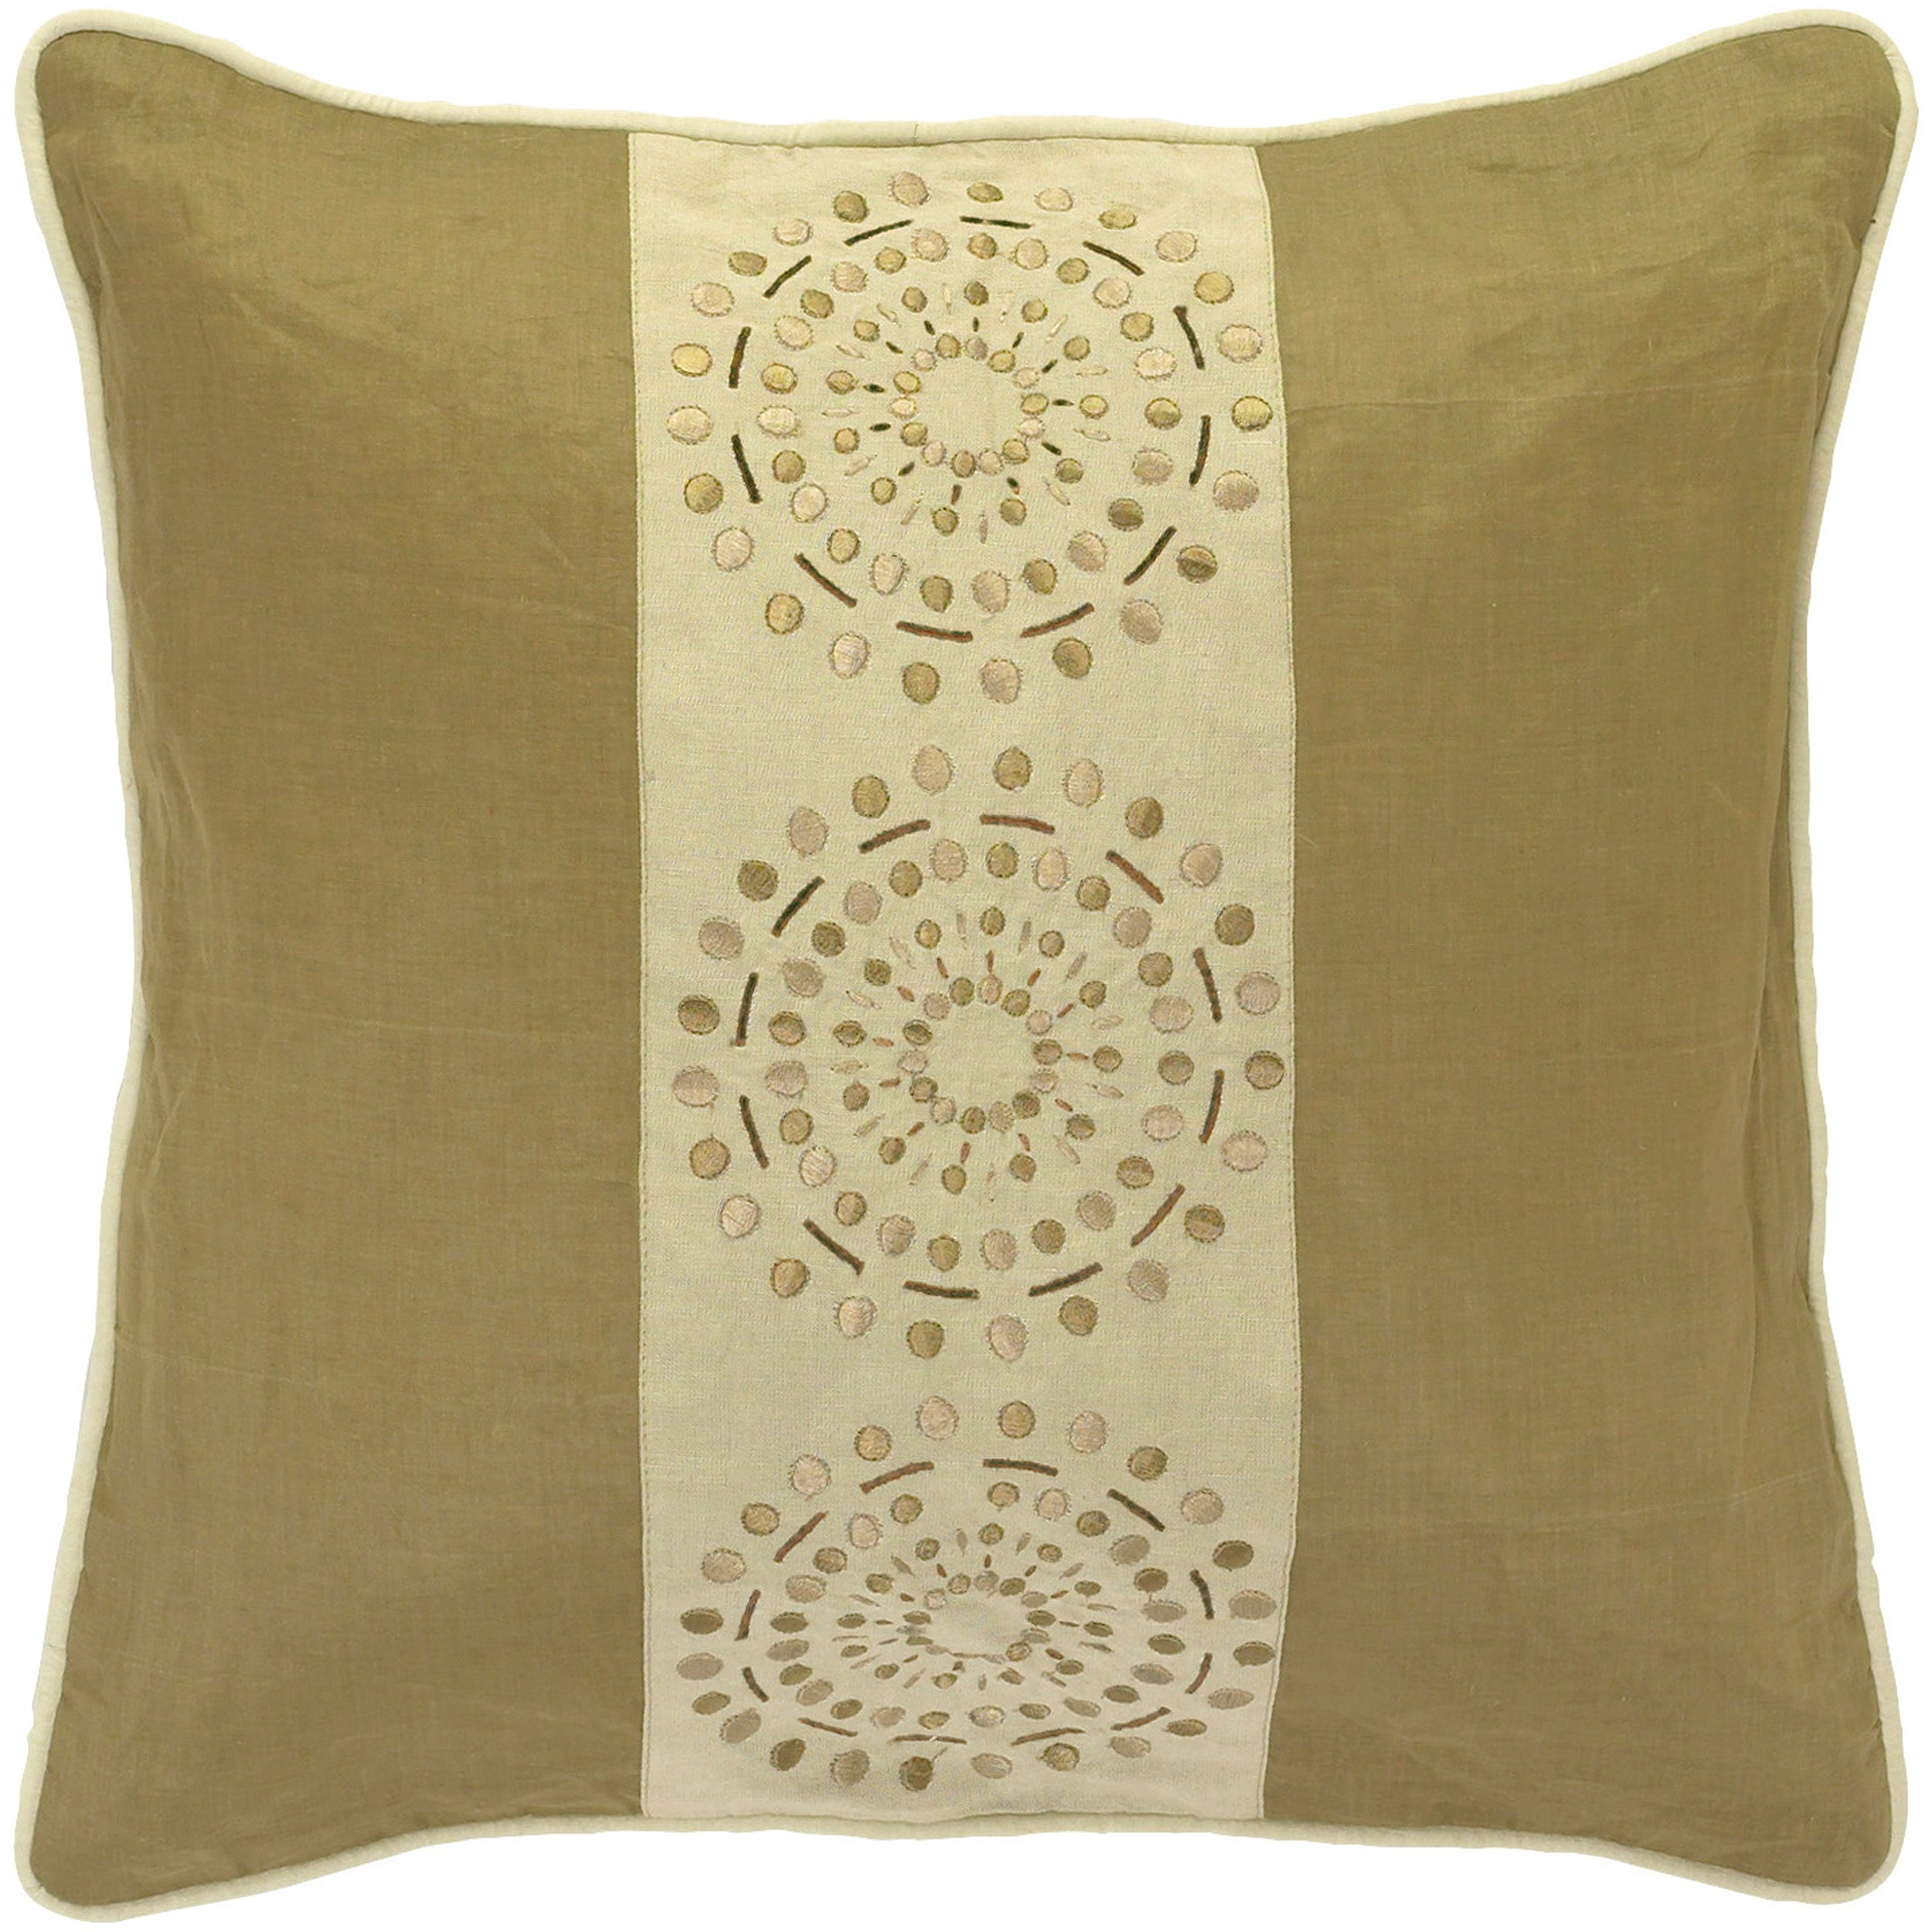 Throw Pillows By Newport : Share: Email